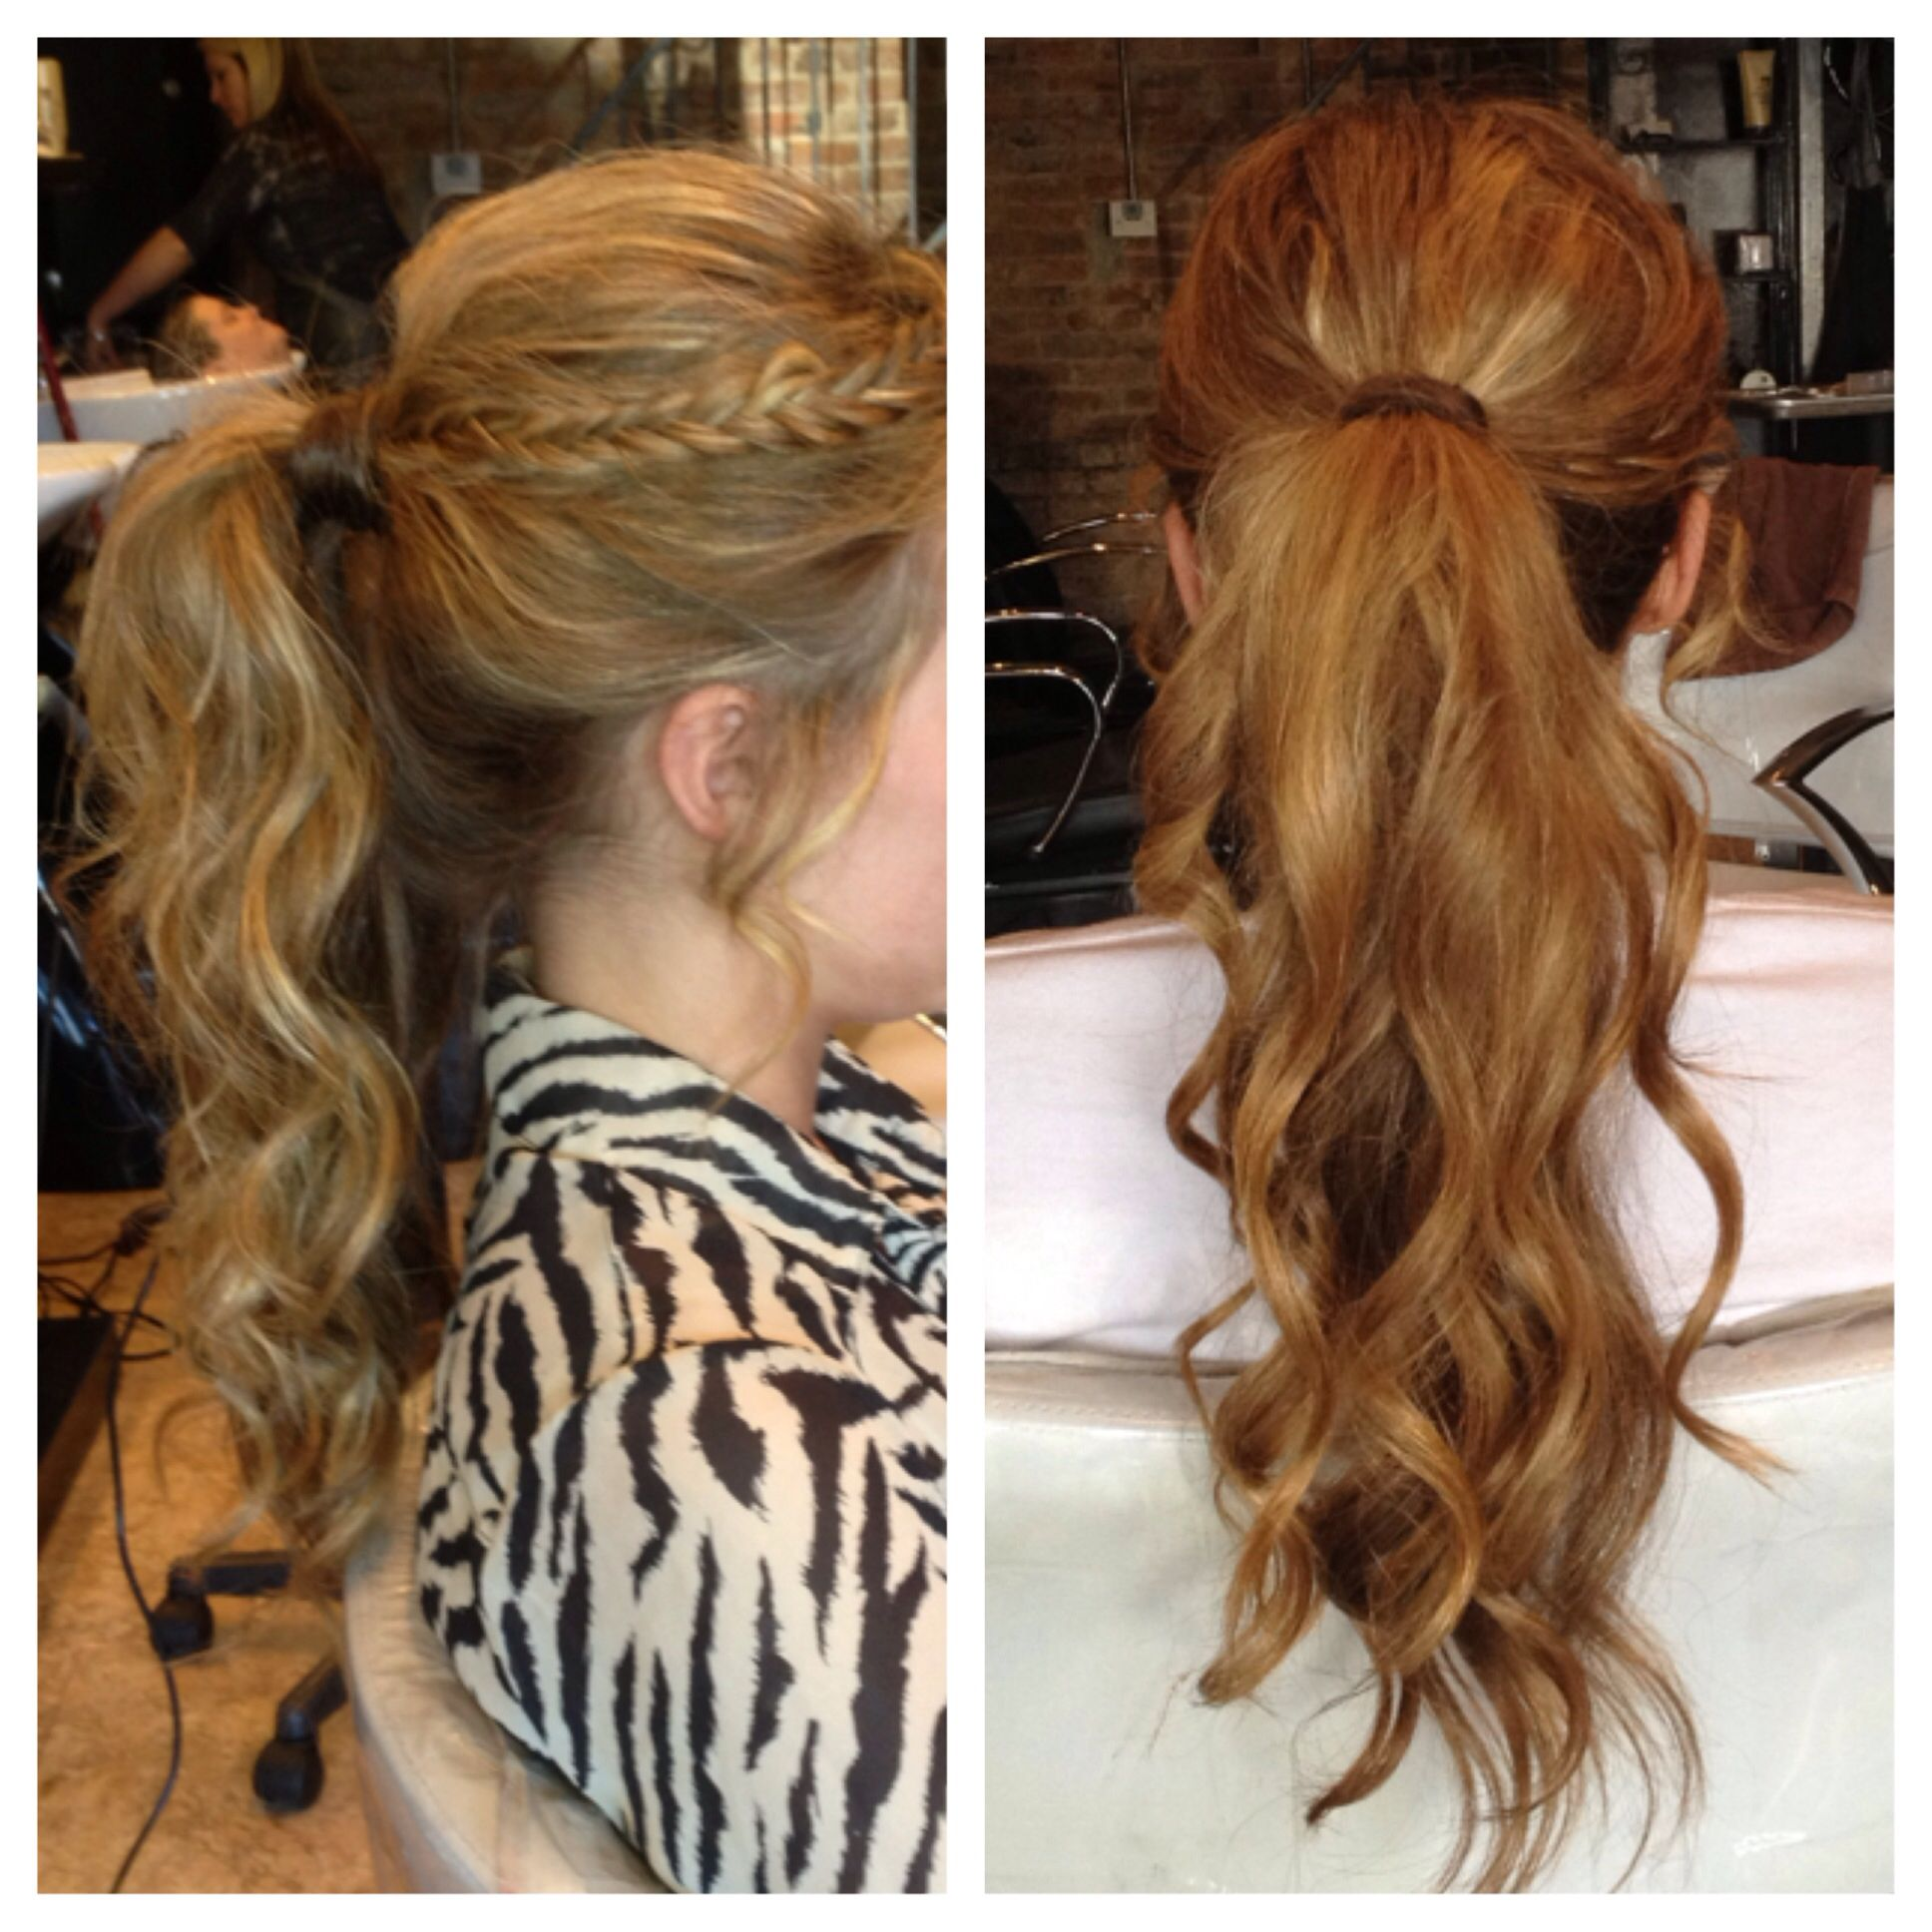 homecoming / prom hairstyle - curly ponytail with bangs